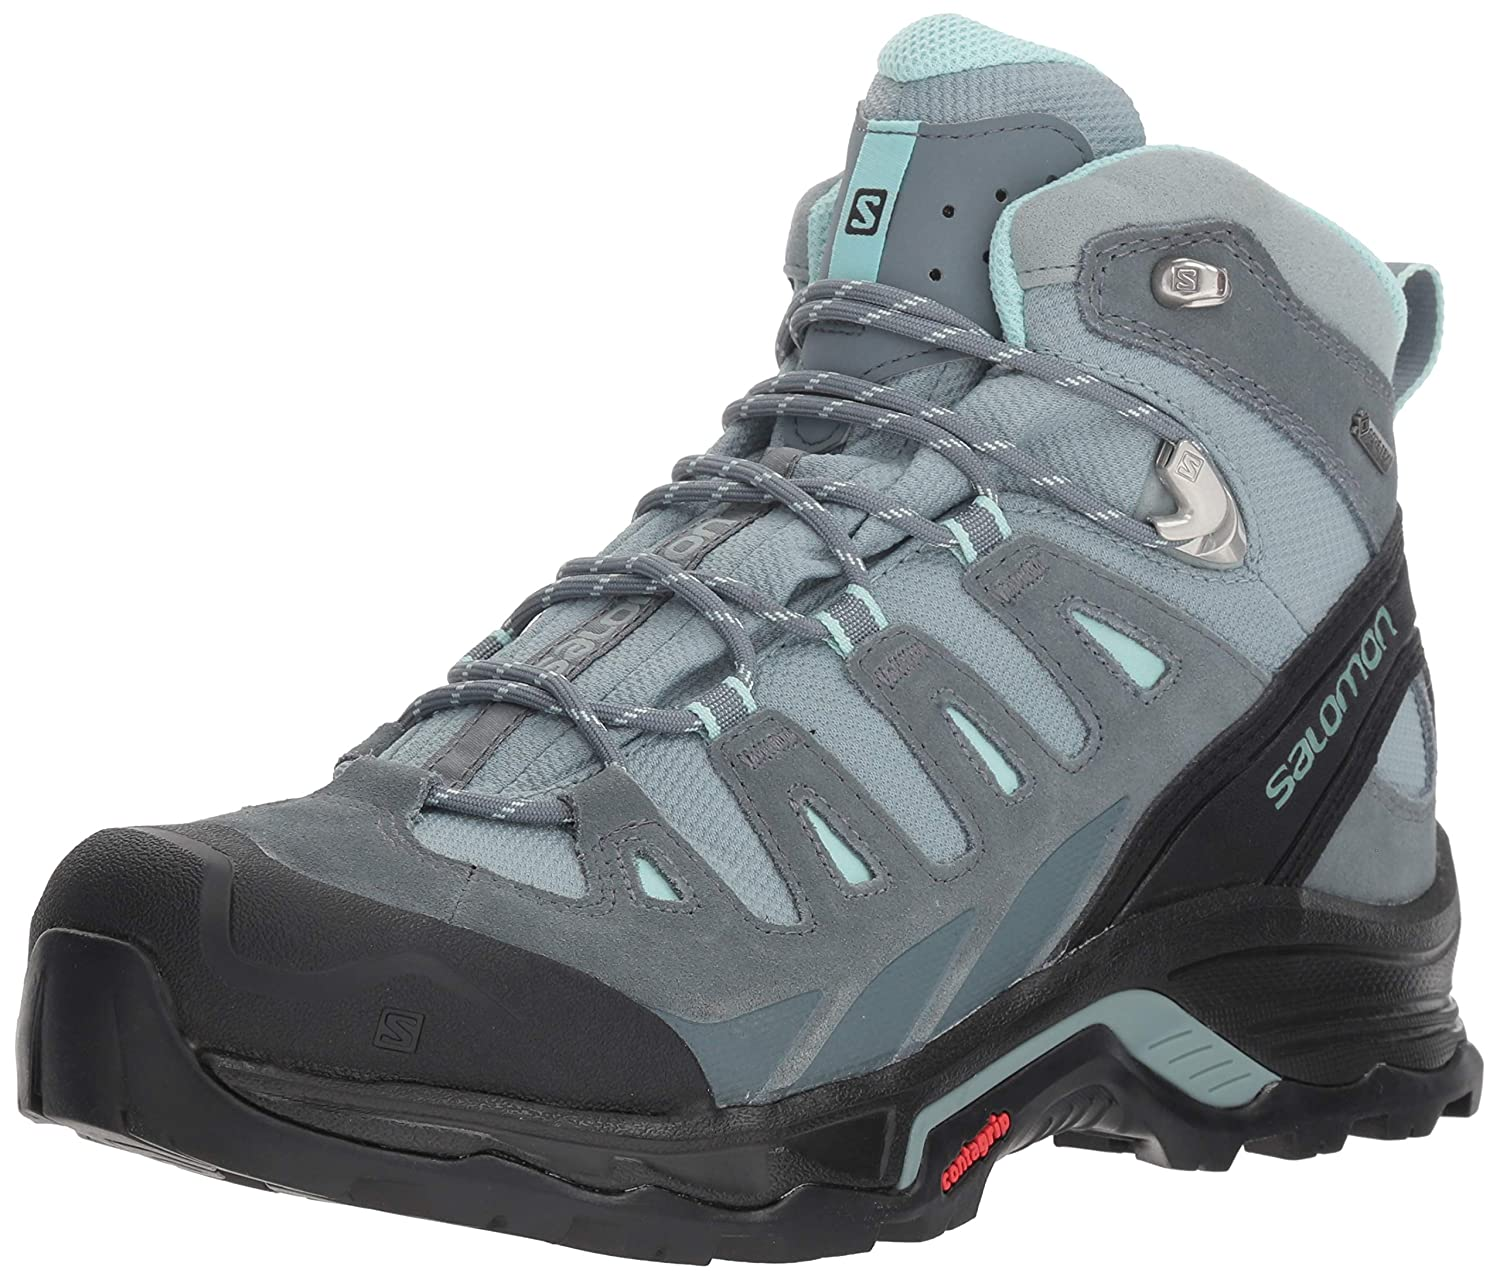 Image of Backpacking Boots Salomon Women's Quest Prime GTX W Backpacking Boot